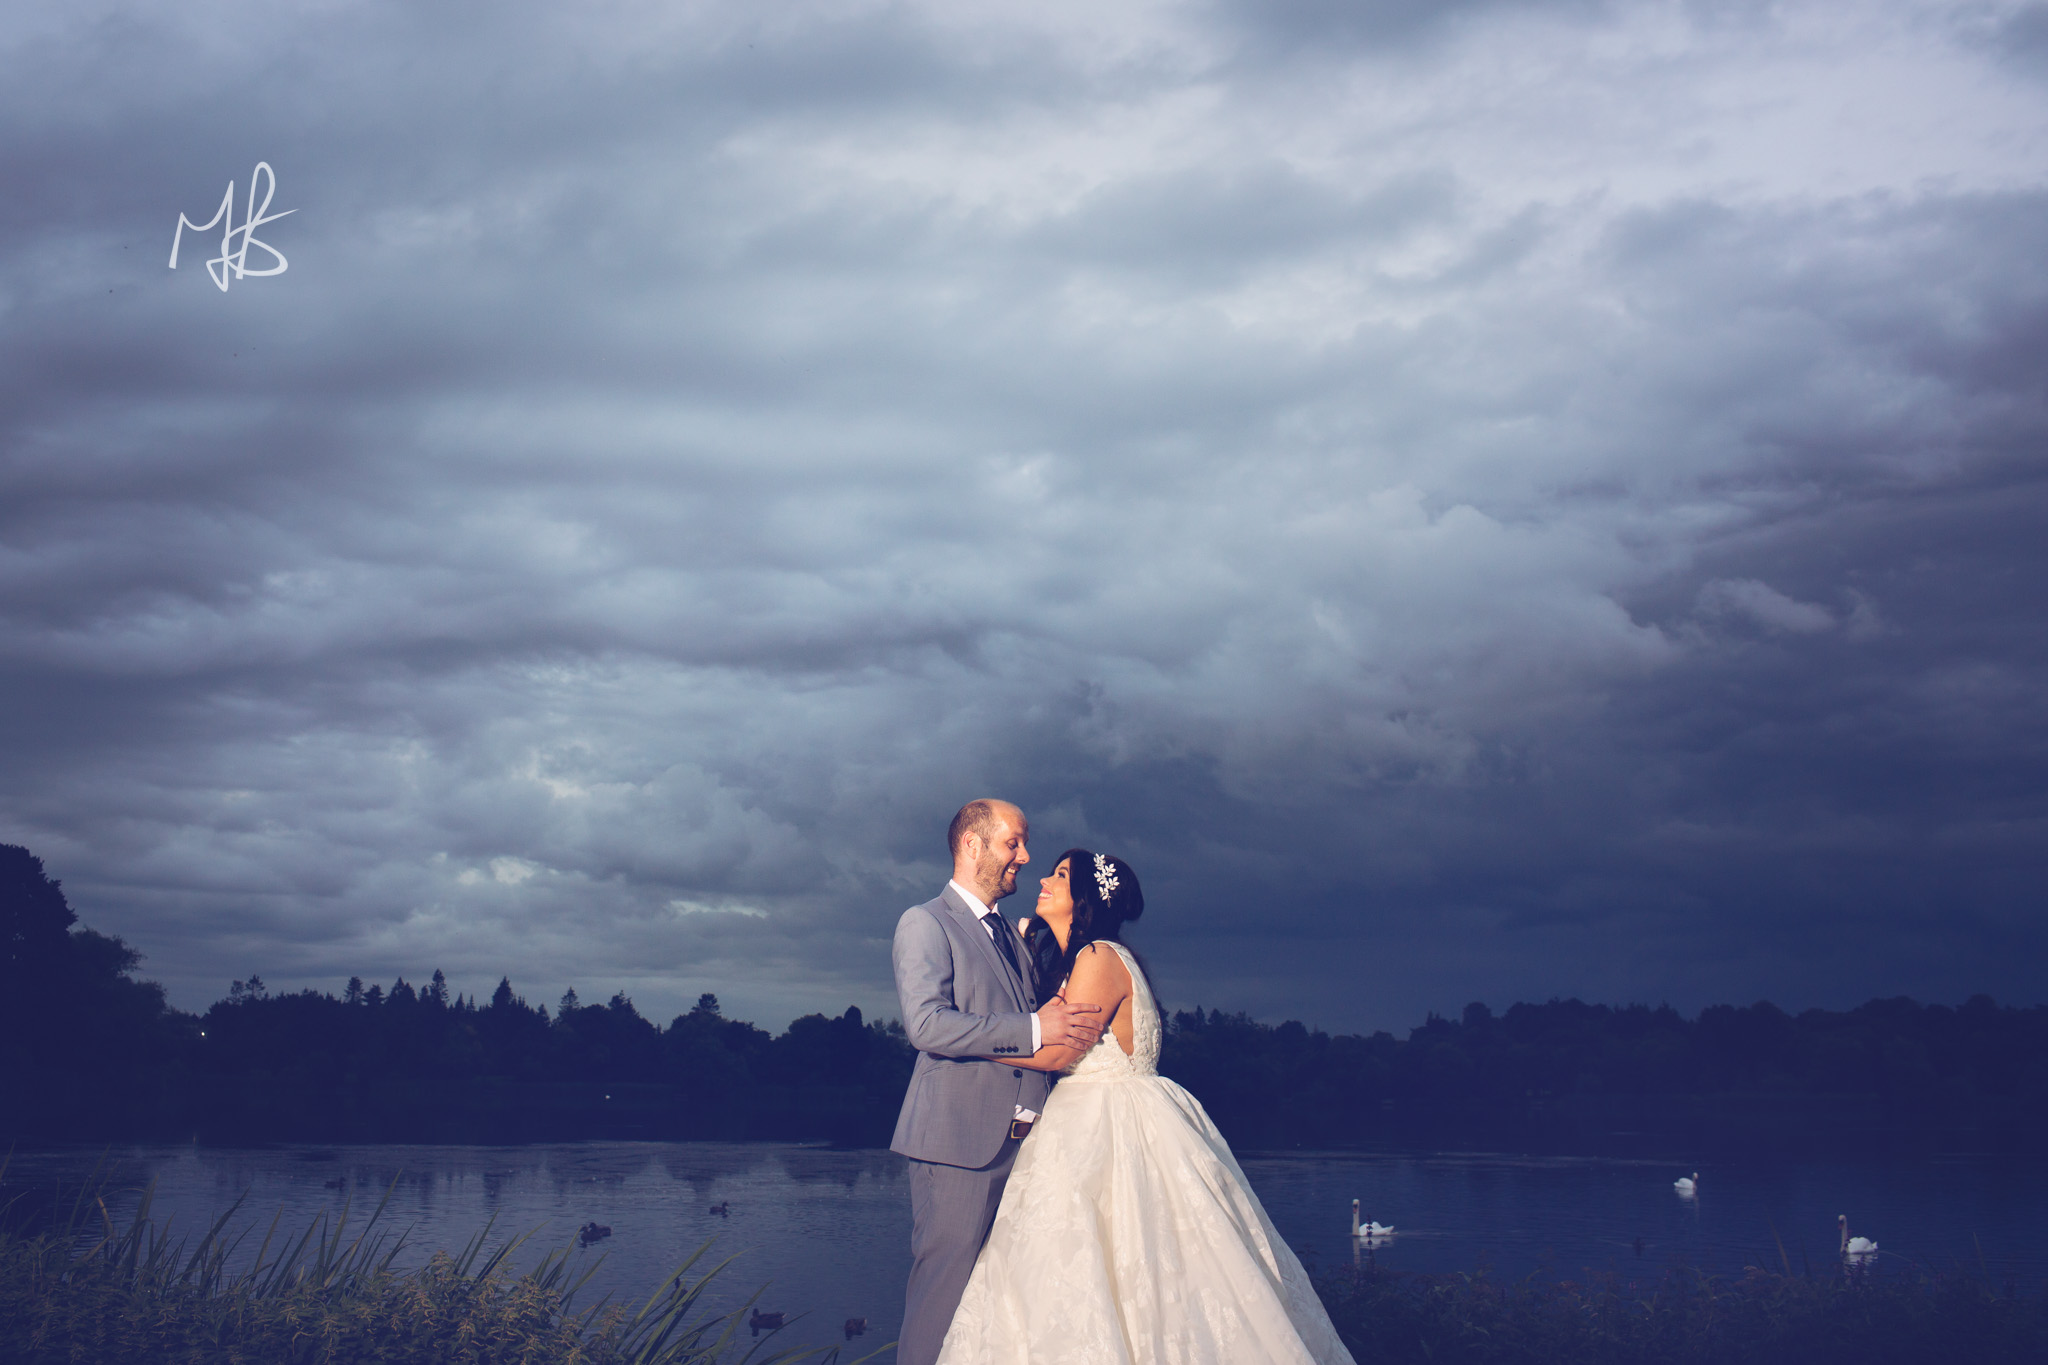 Mark_Barnes_Northern_Ireland_Wedding_Photography_Brownlow_House_Wedding_Photography-1.jpg